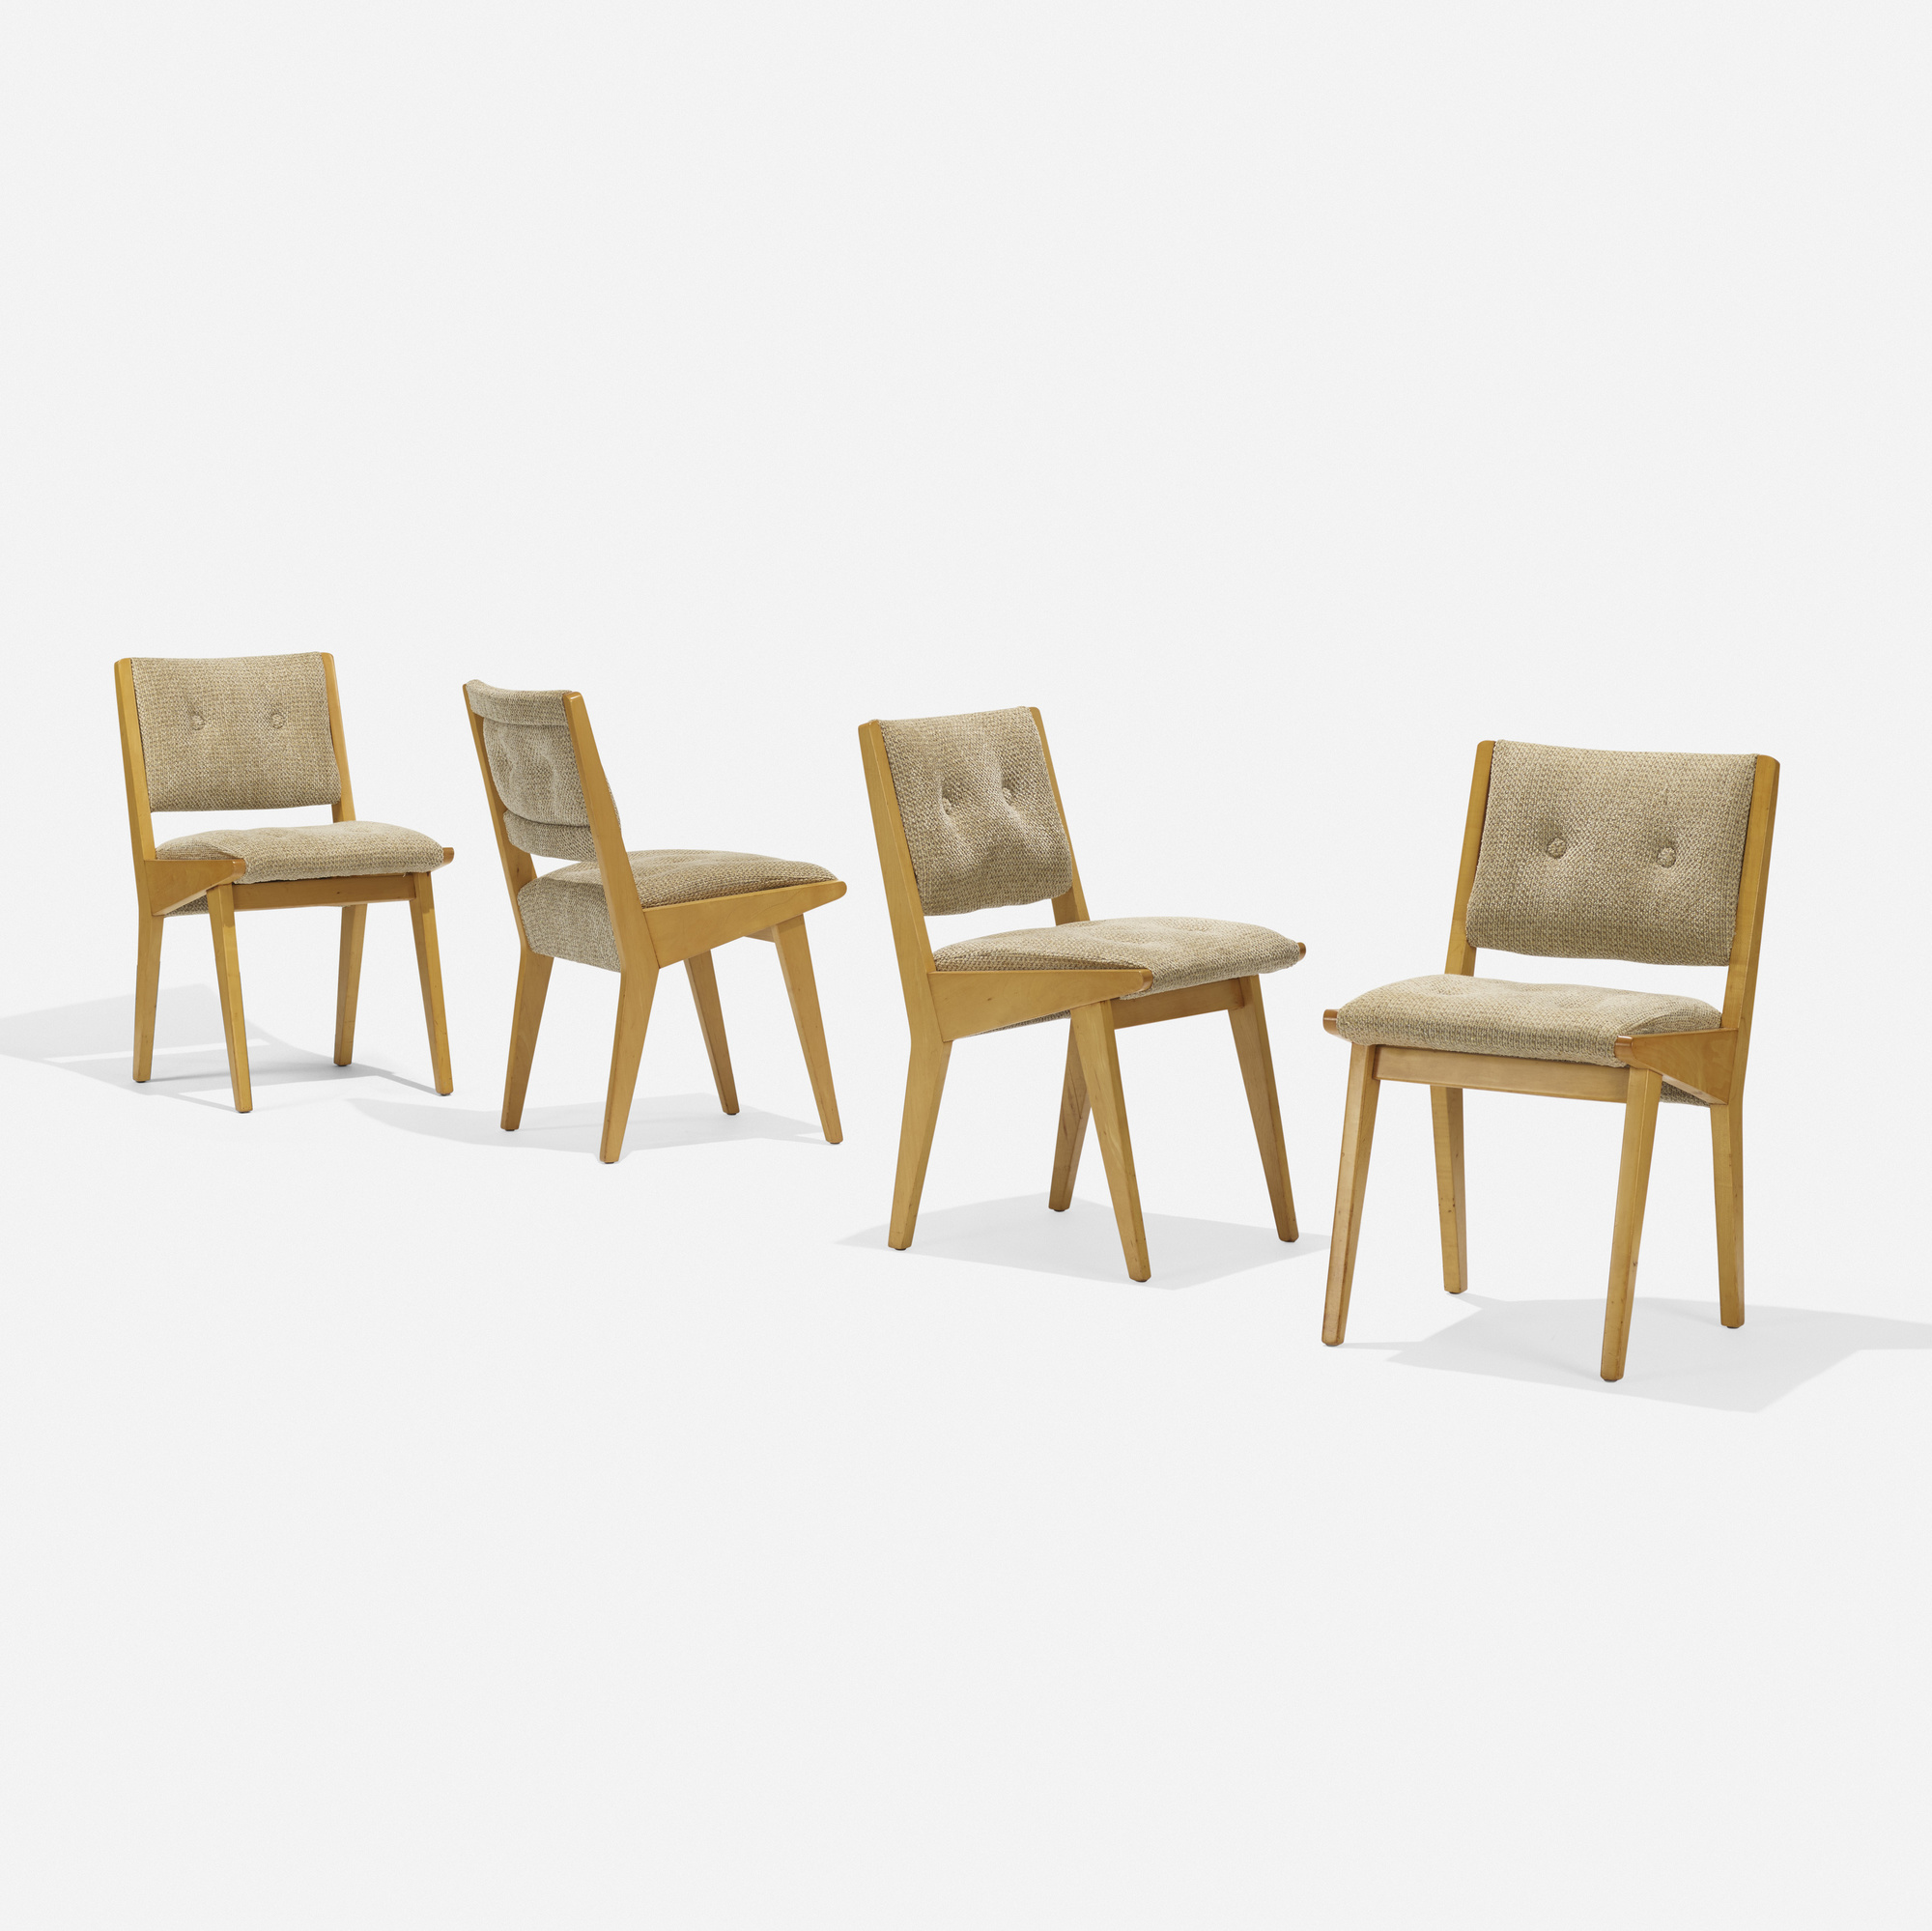 305 jens risom dining chairs model 666usp set of four - Jens risom dining chairs ...